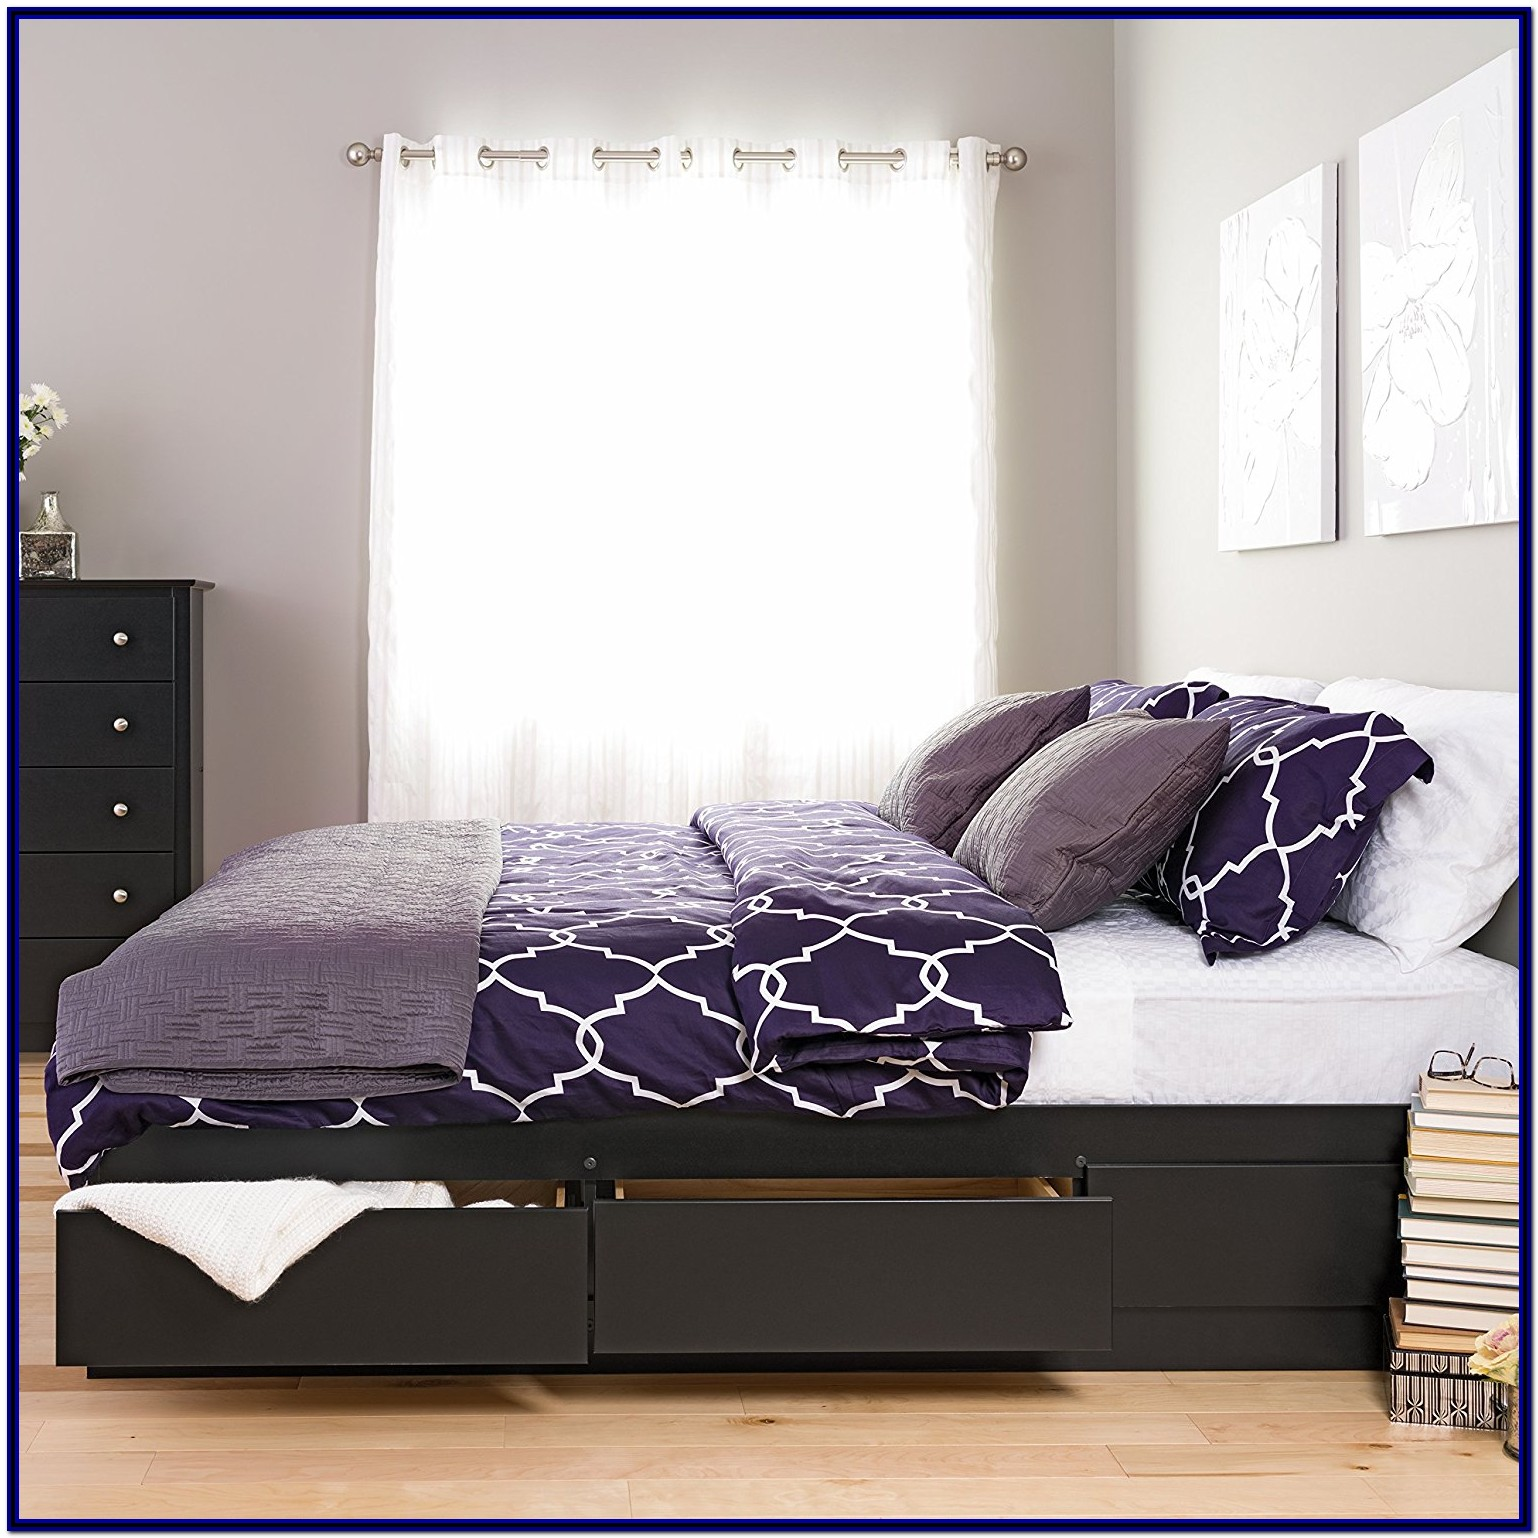 King Bed Frame With Storage Amazon